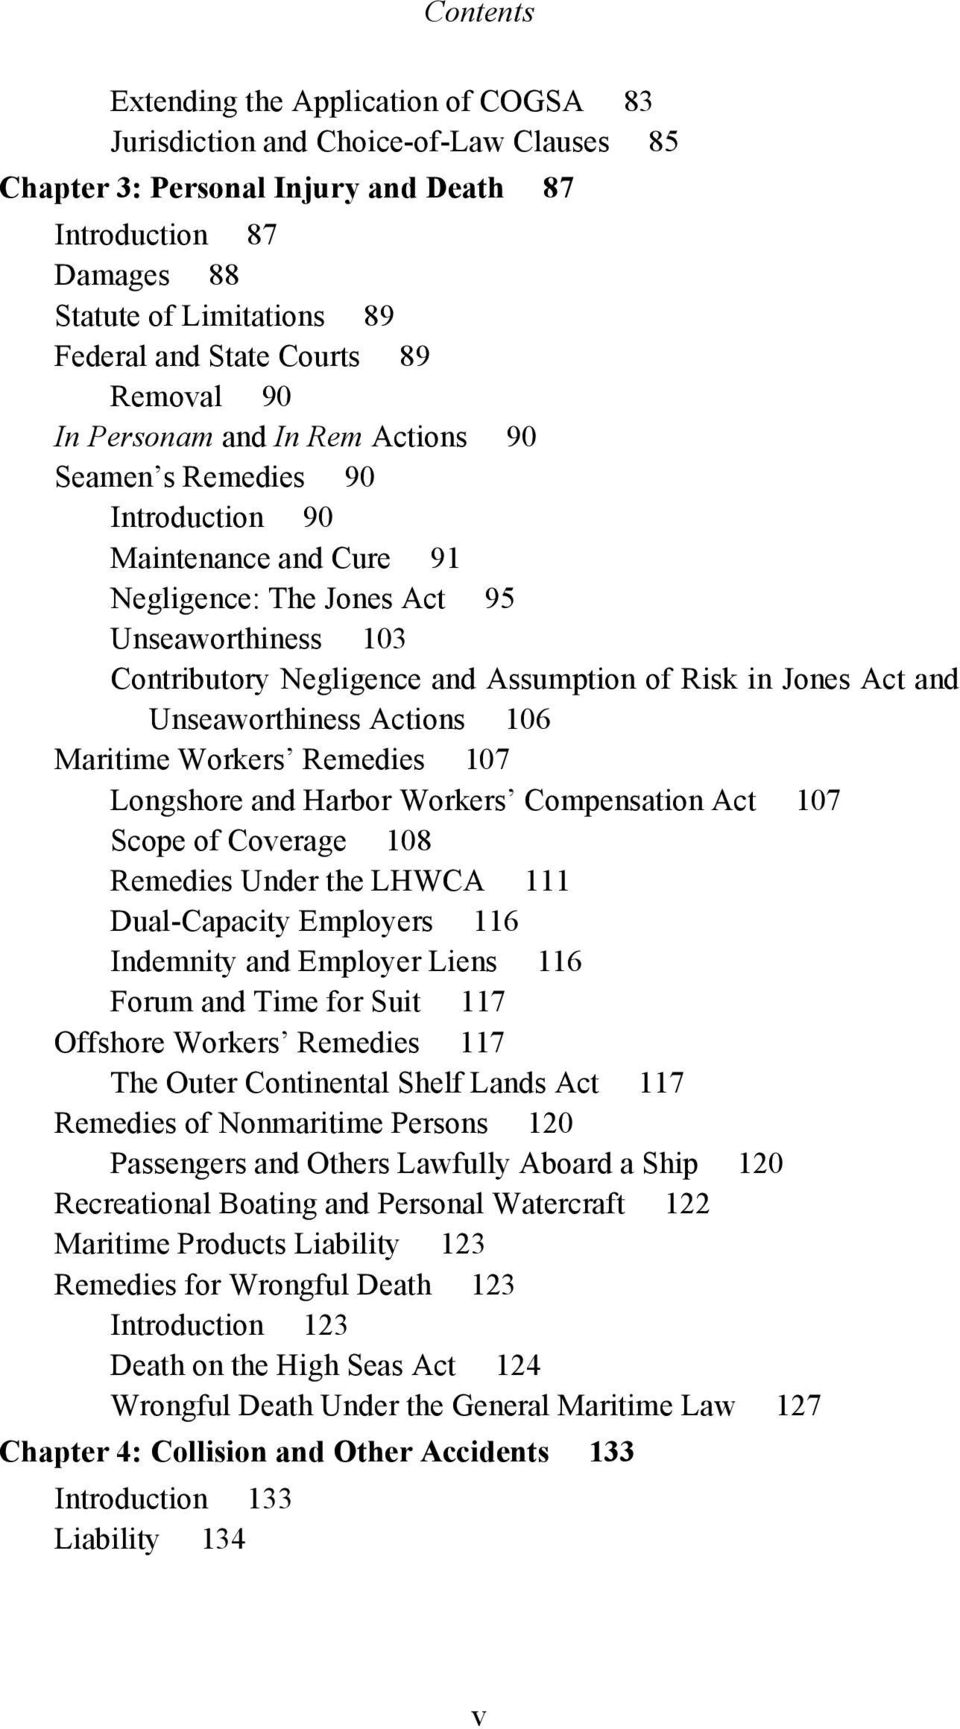 Assumption of Risk in Jones Act and Unseaworthiness Actions 106 Maritime Workers Remedies 107 Longshore and Harbor Workers Compensation Act 107 Scope of Coverage 108 Remedies Under the LHWCA 111